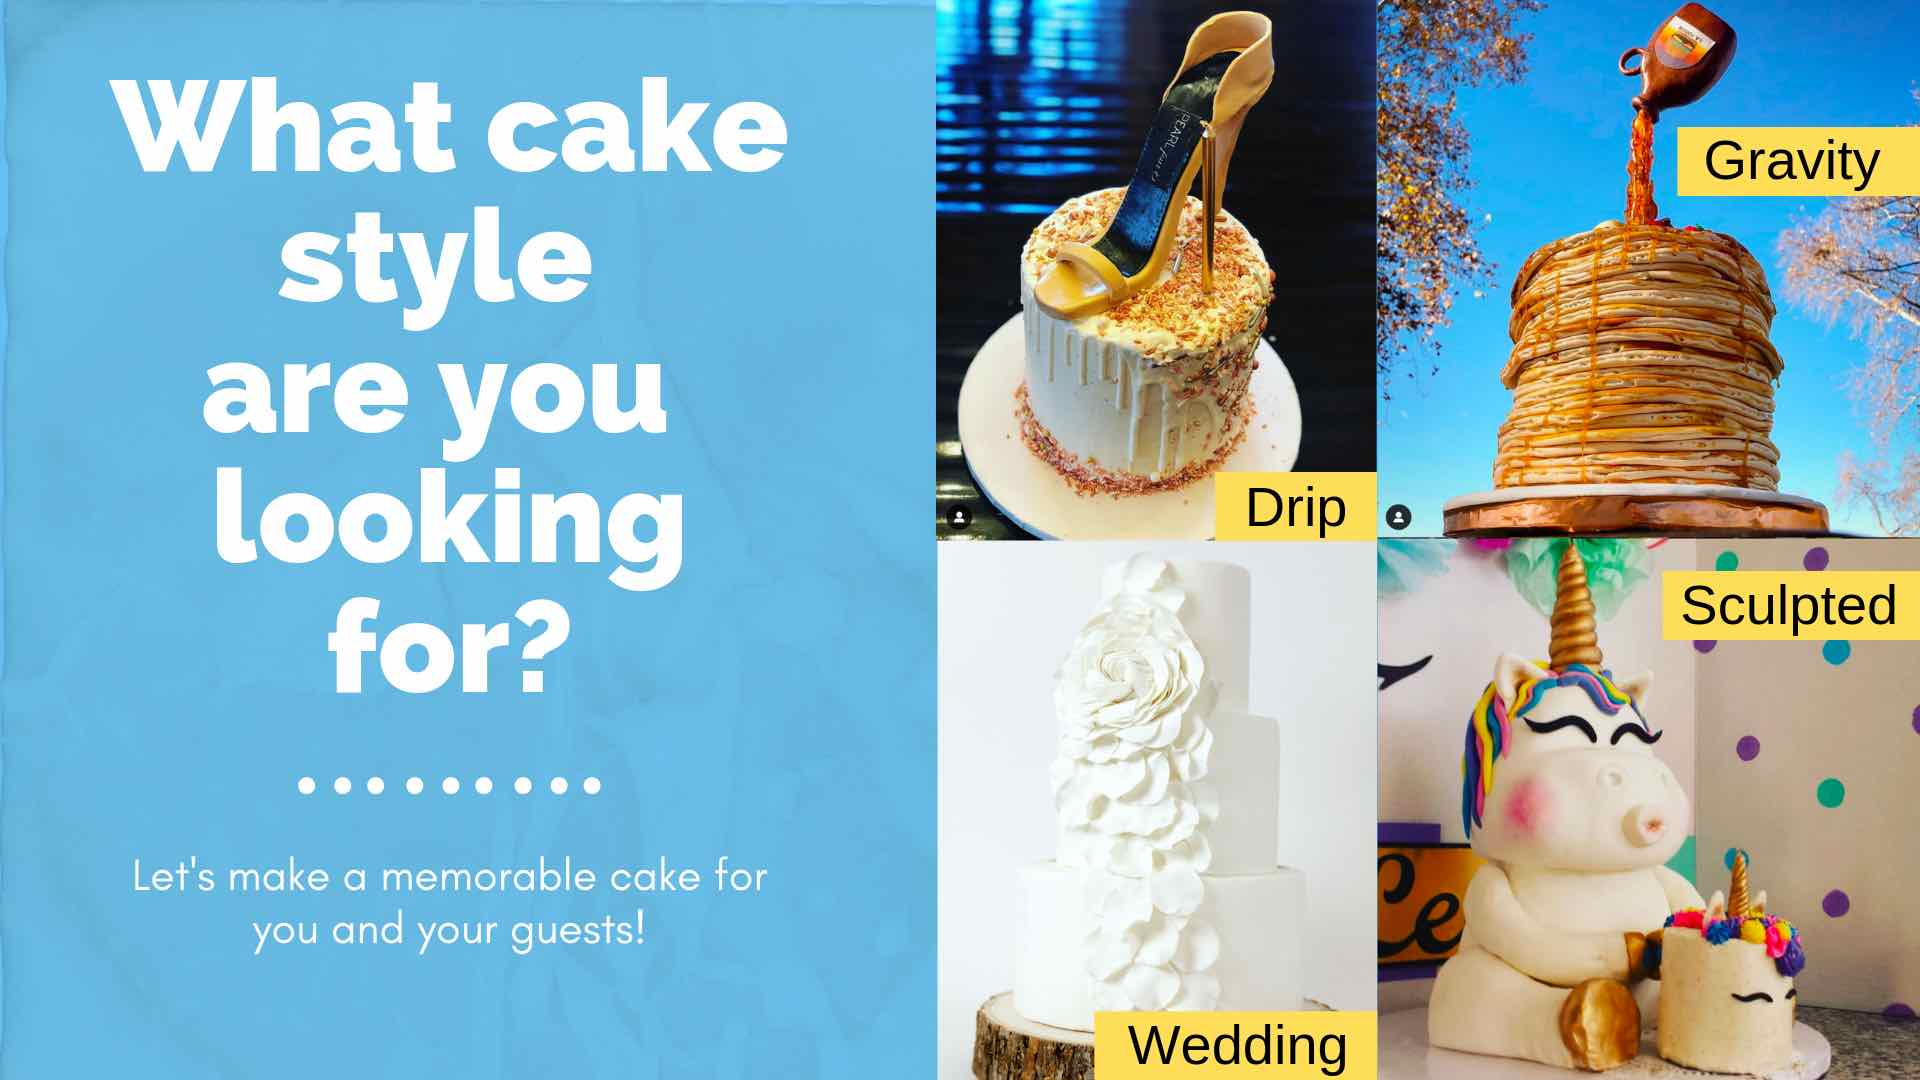 Style of cakes